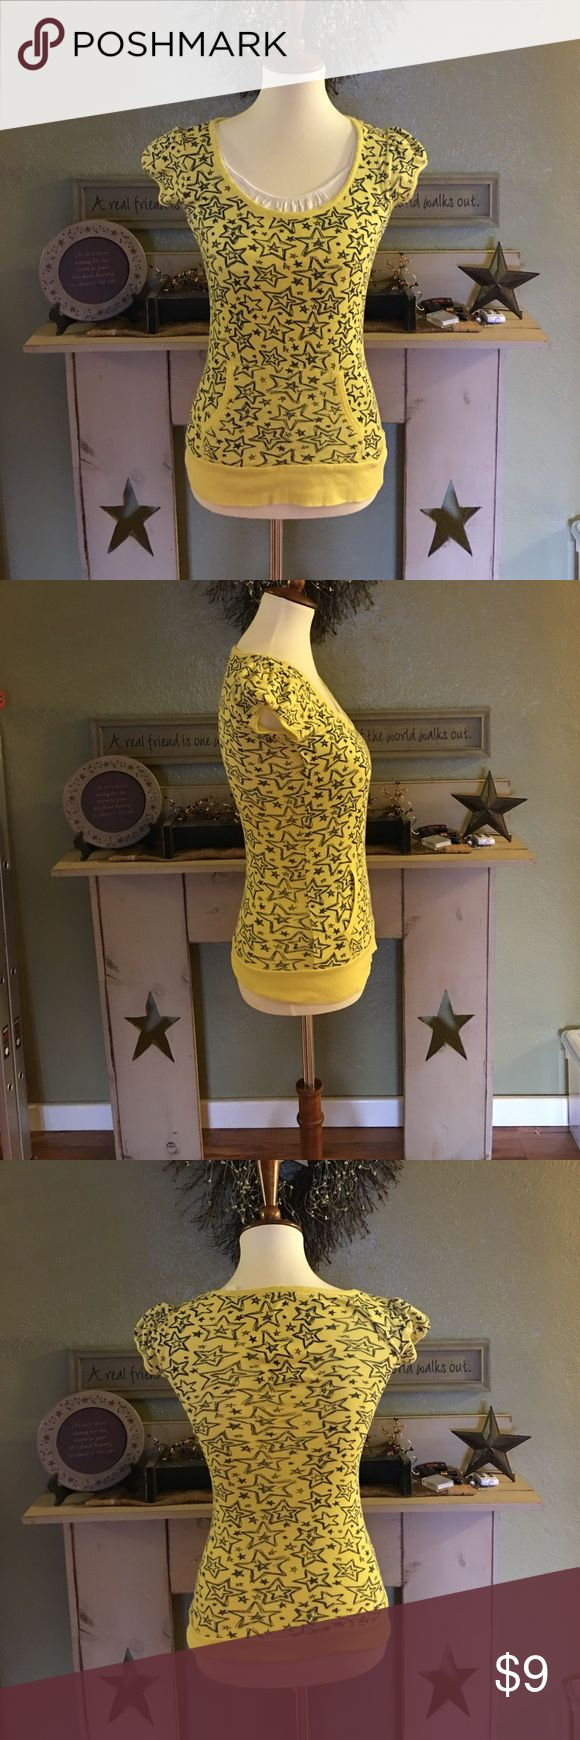 Yellow short sleeve shirt This is a yellow juniors medium shirt from Kohl's it's like new navy blue stars on it And a little pocket across the front. Excellent condition no rips or stains. Tops Blouses